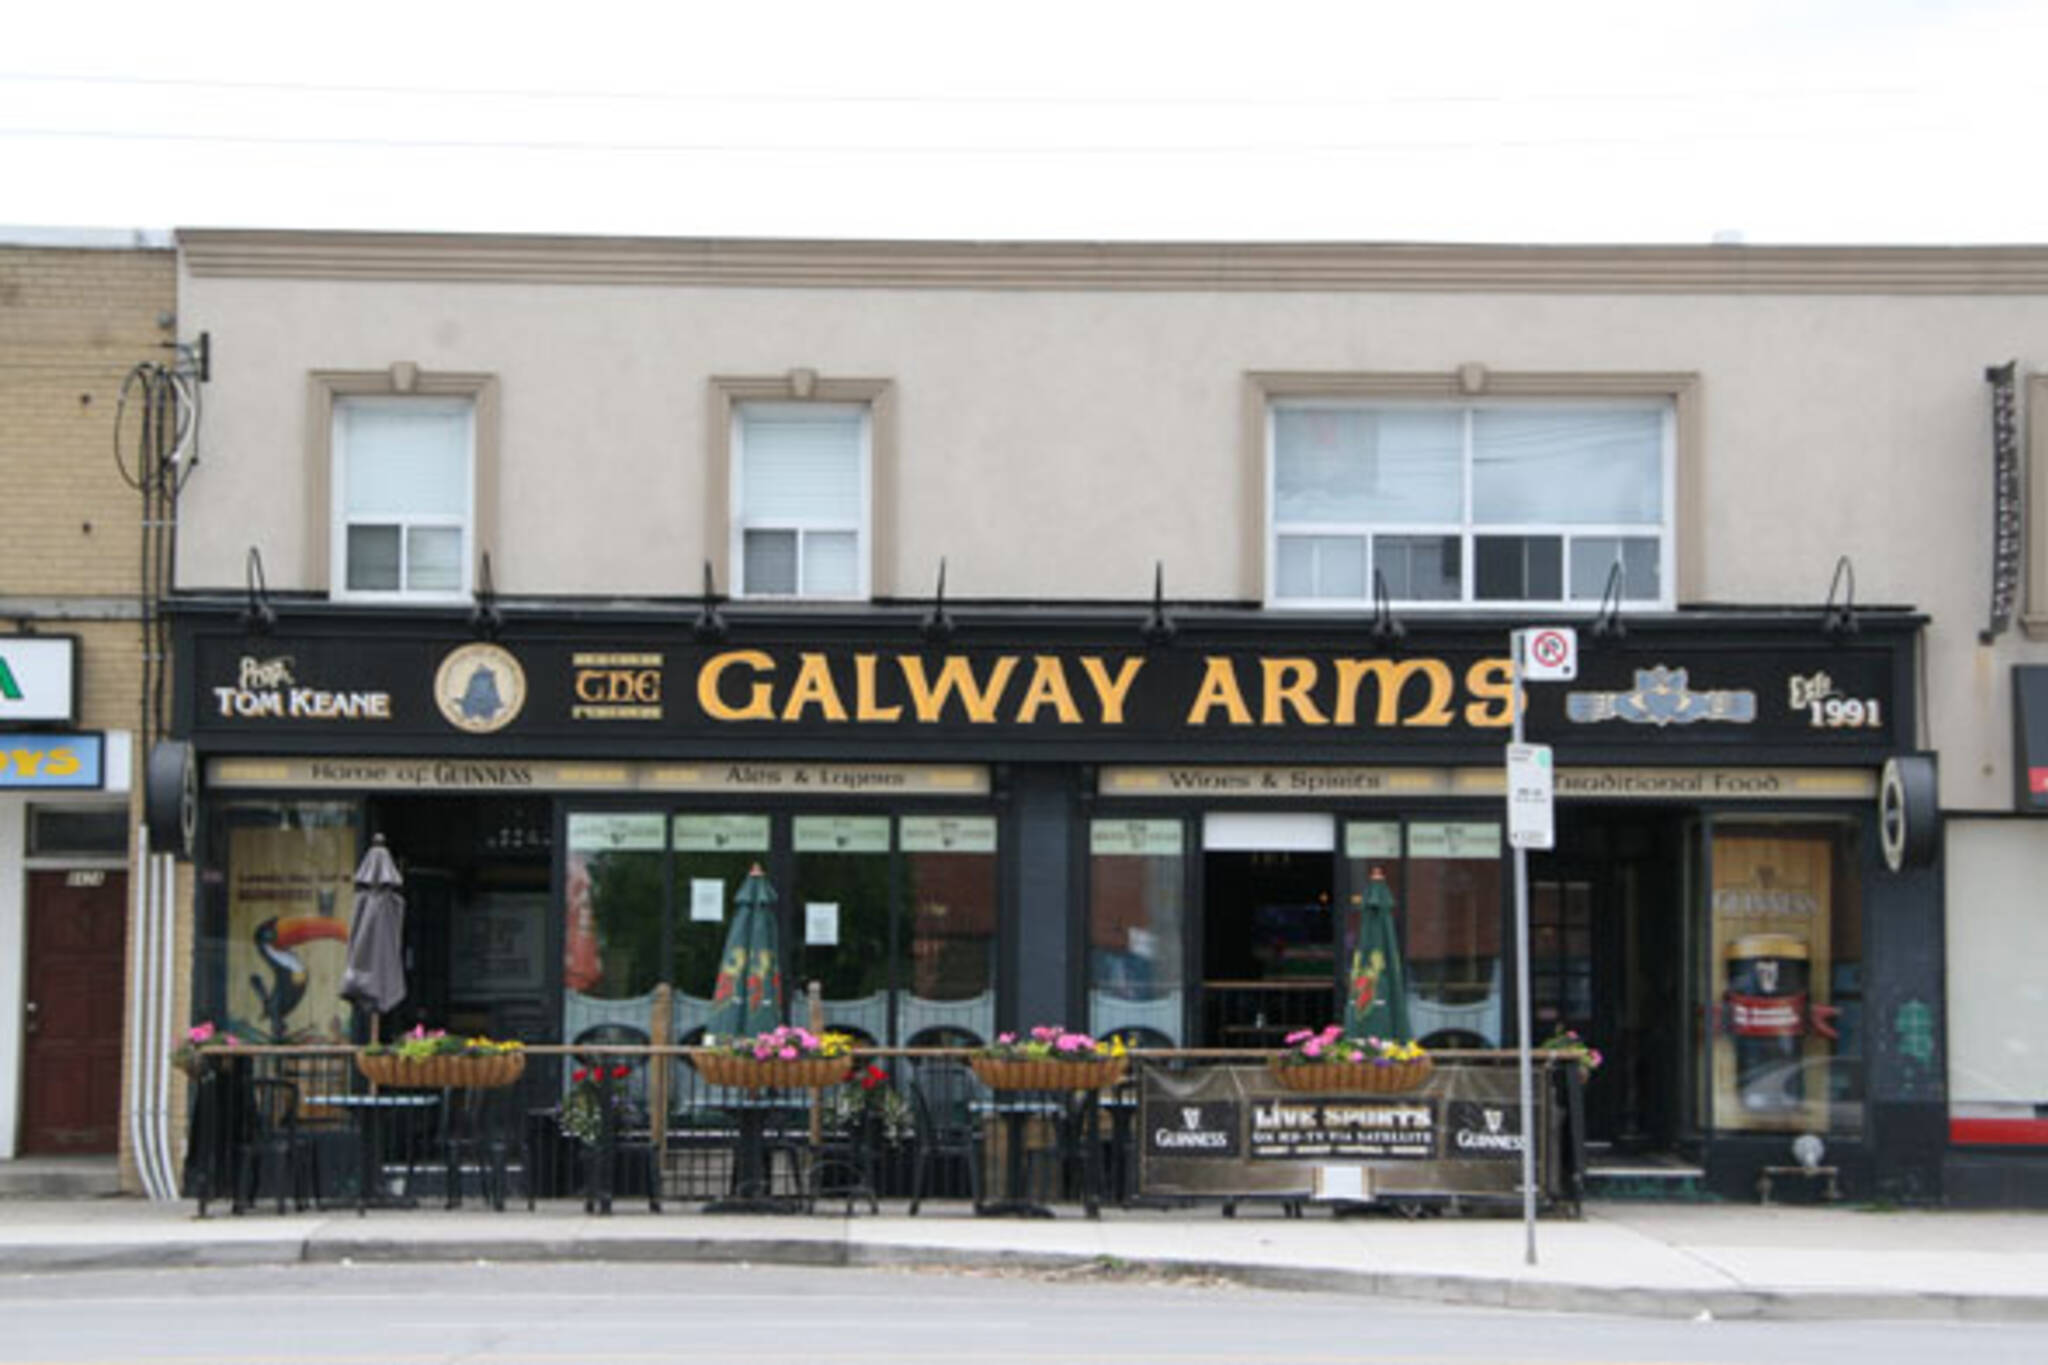 Galway Arms Toronto